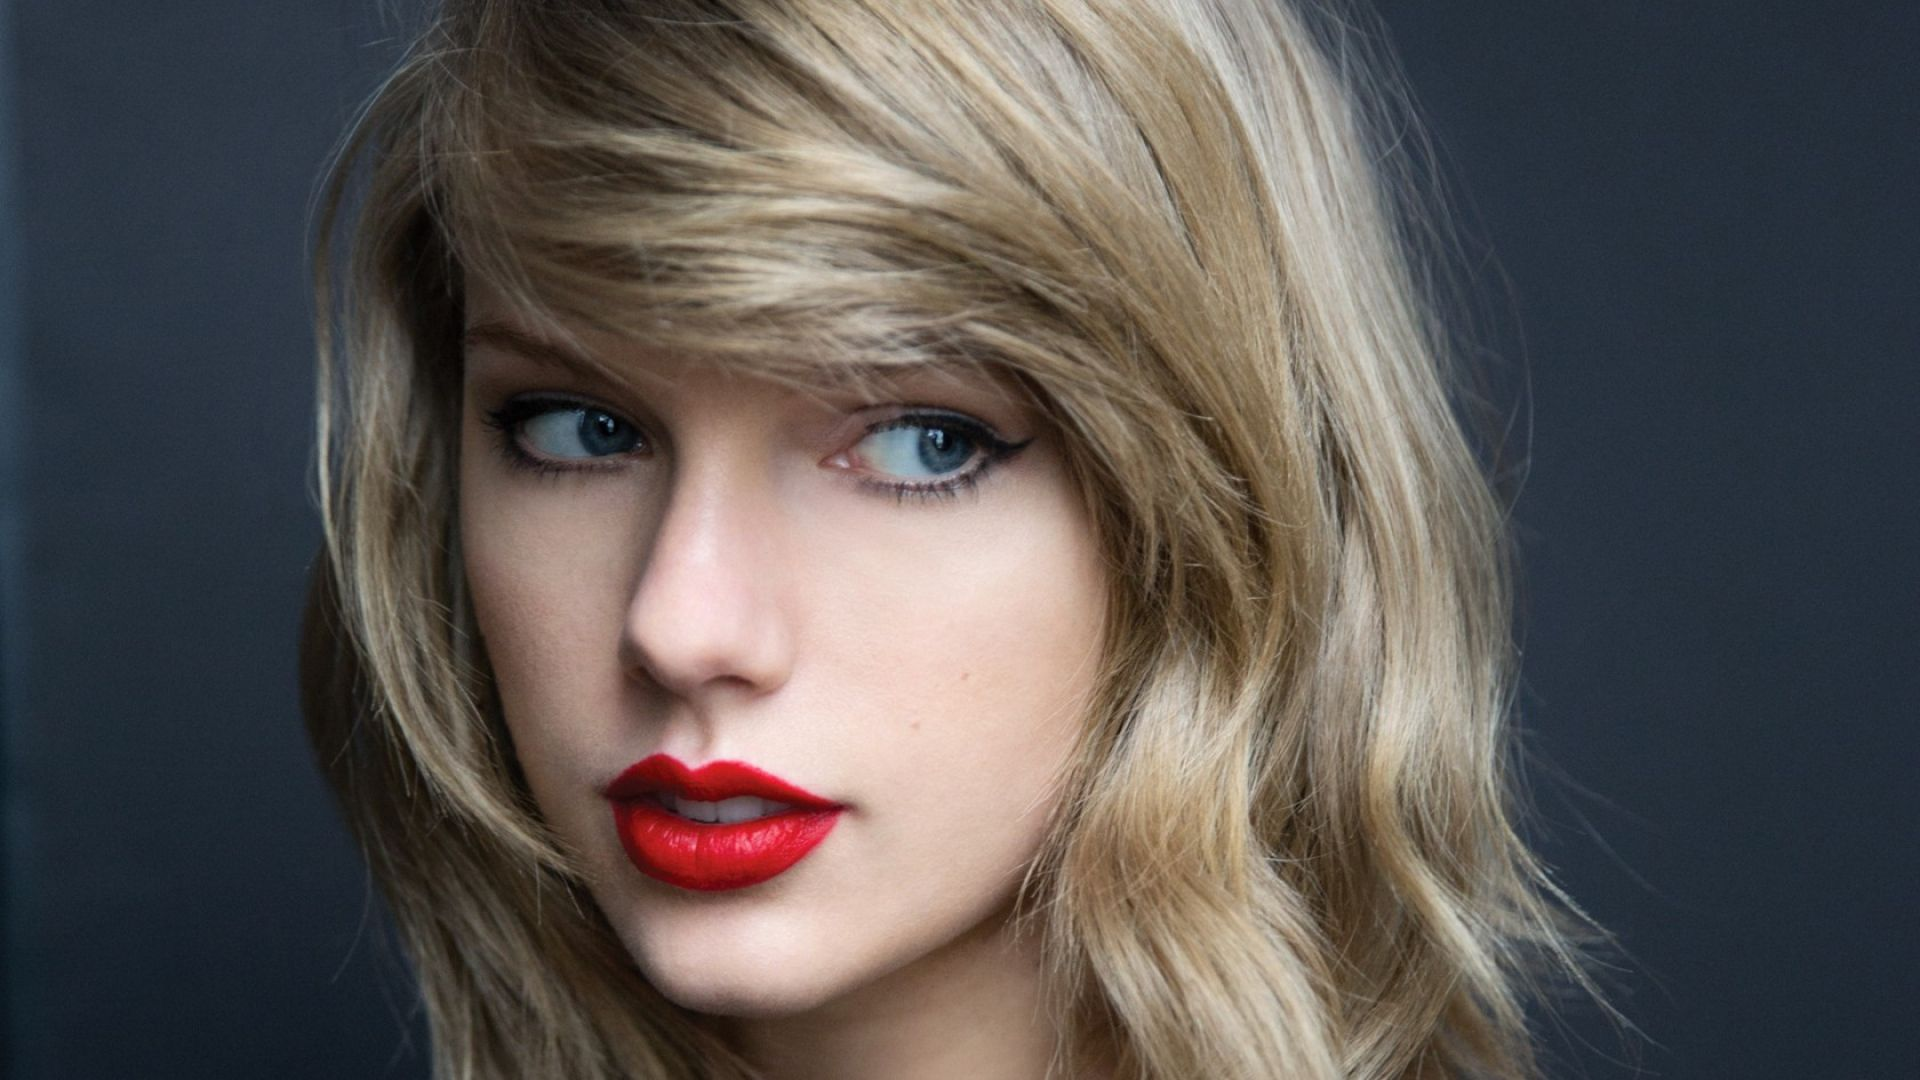 taylor swift wallpapers hd wallpapers | hd wallpapers | pinterest